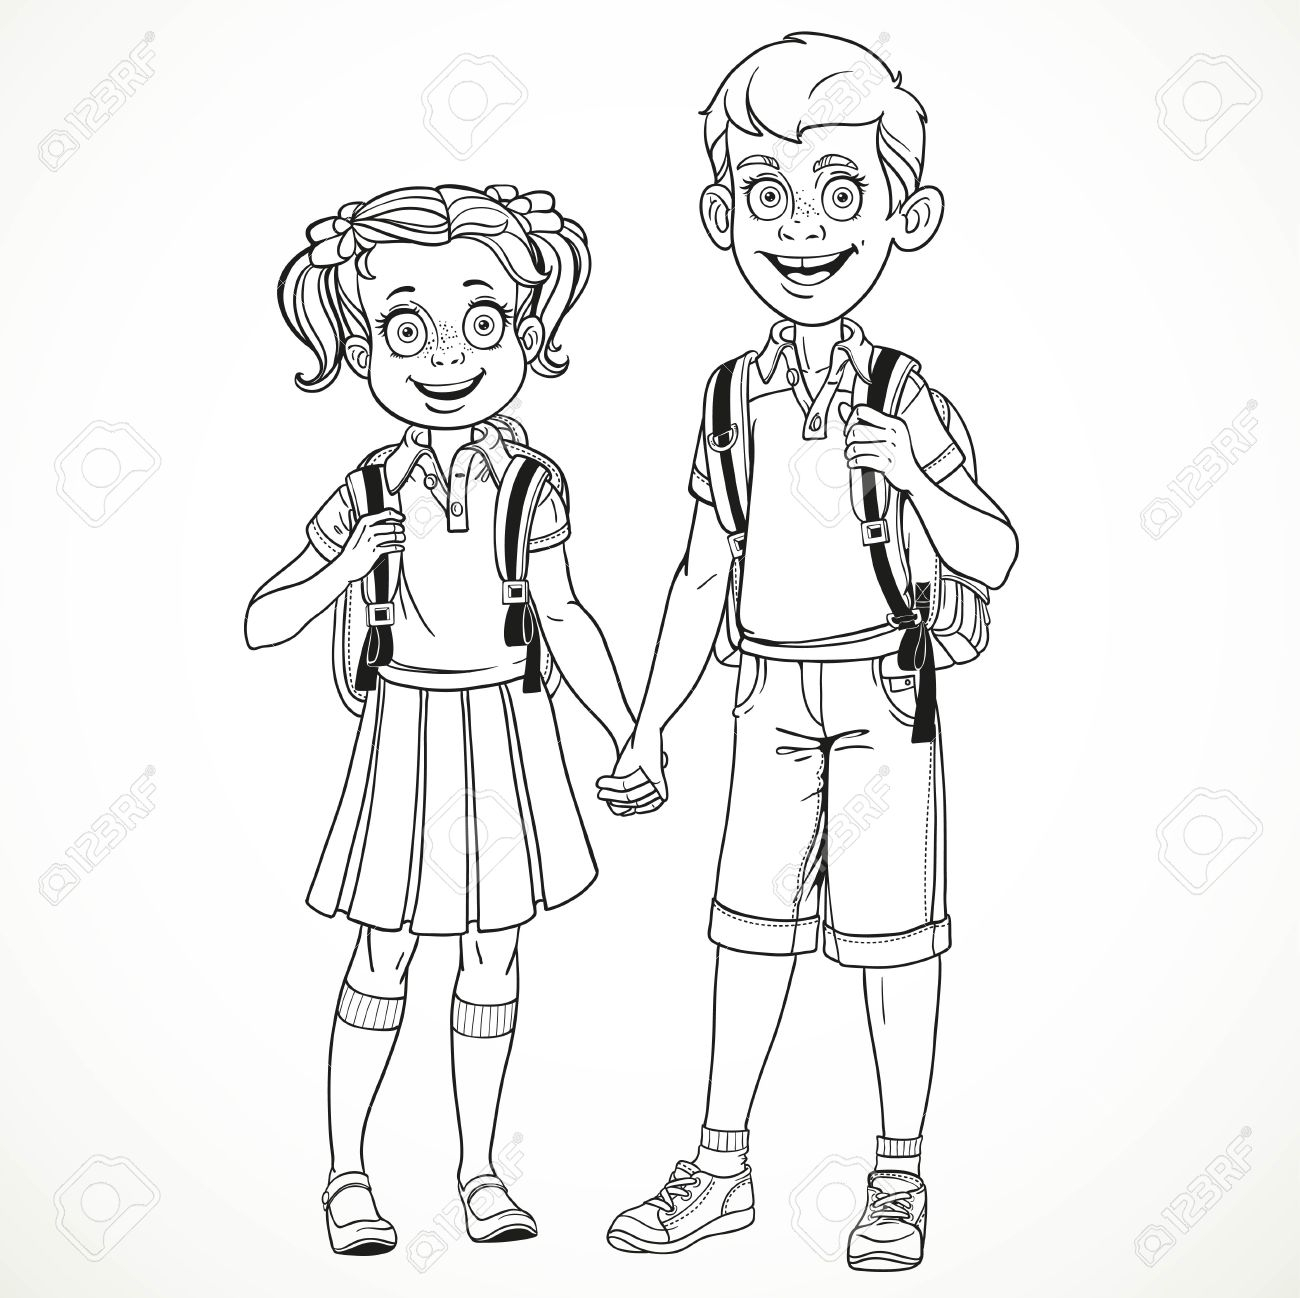 1300x1298 Drawing Of A Boy And A Girl Boy And Girl With A School Bag Holding